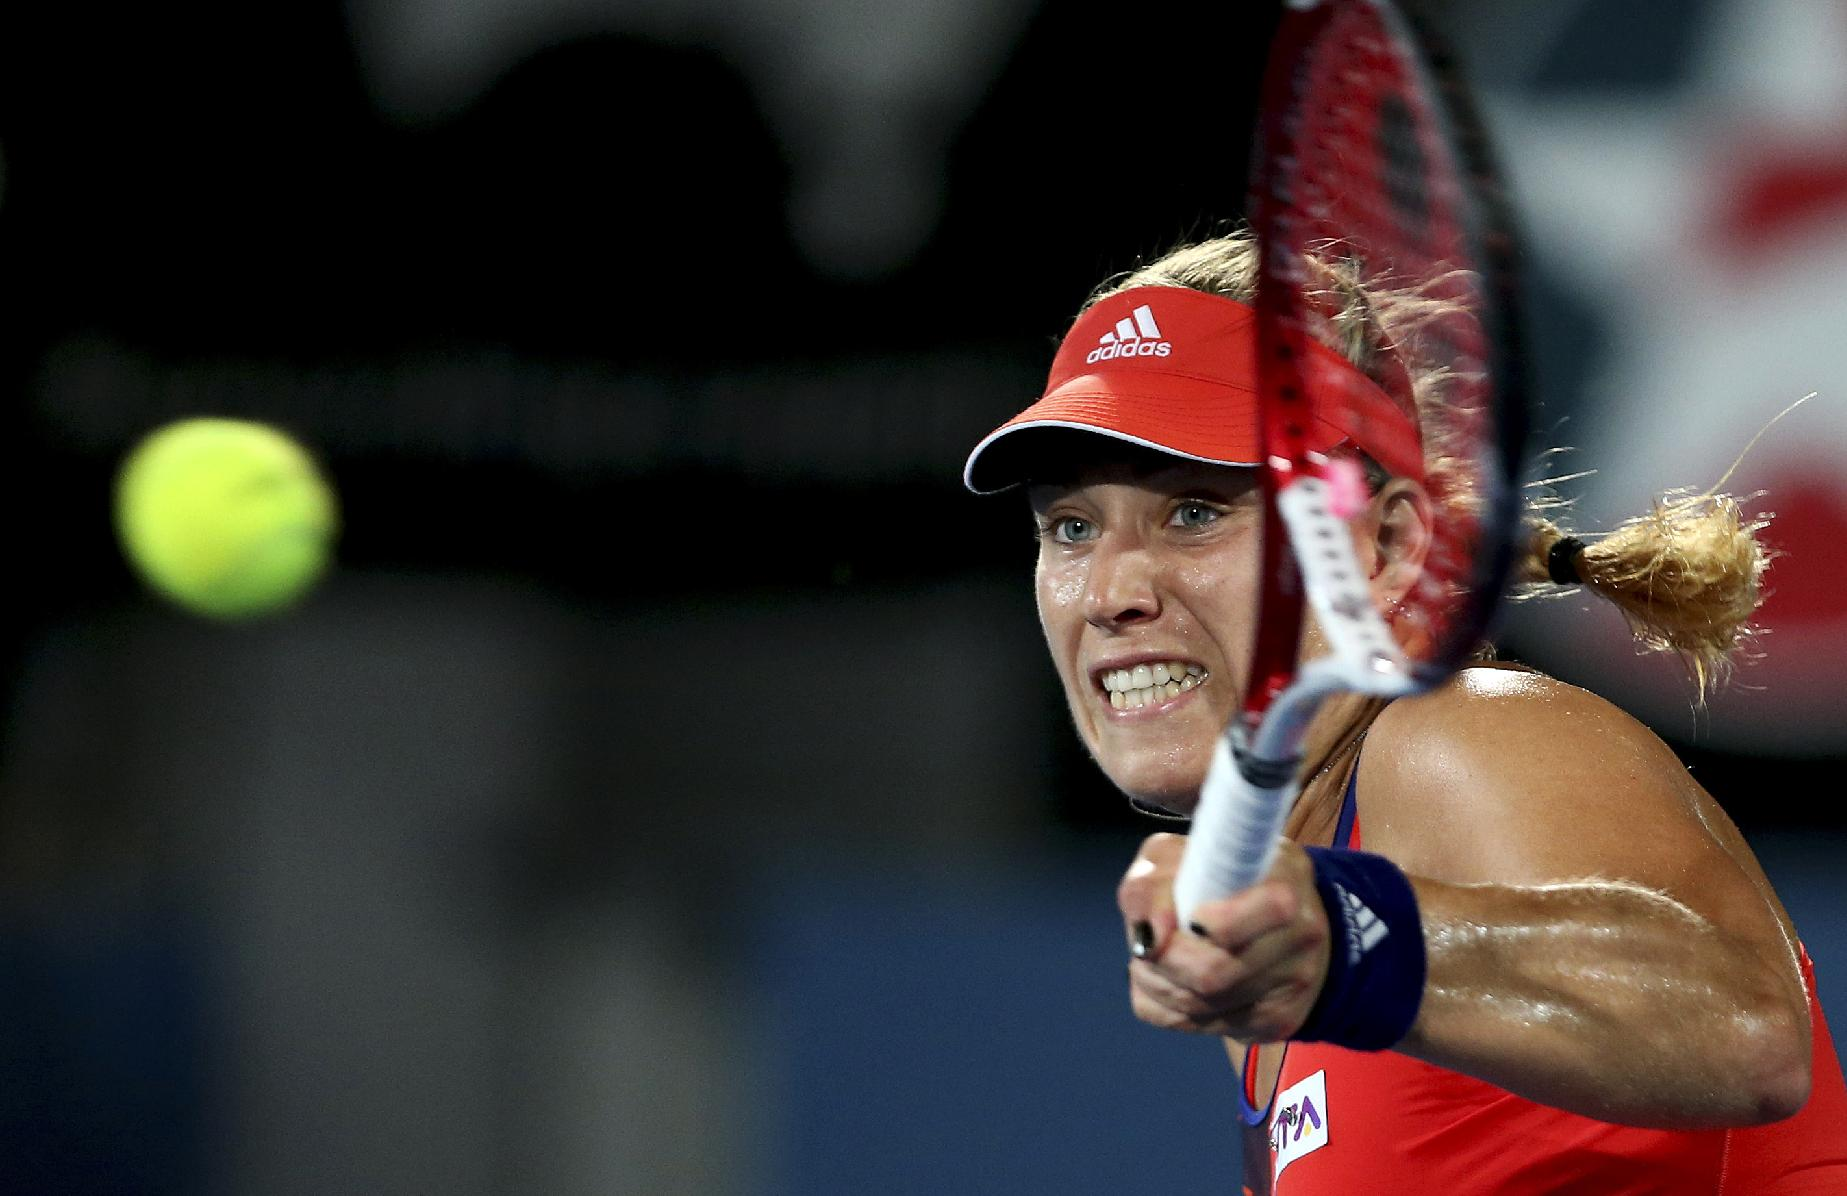 Angelique Kerber of Germany plays a forehand shot in her match against Carla Suarez Navarro of Spain during the Sydney International tennis tournament in Sydney, Australia, Wednesday, Jan. 8, 2014